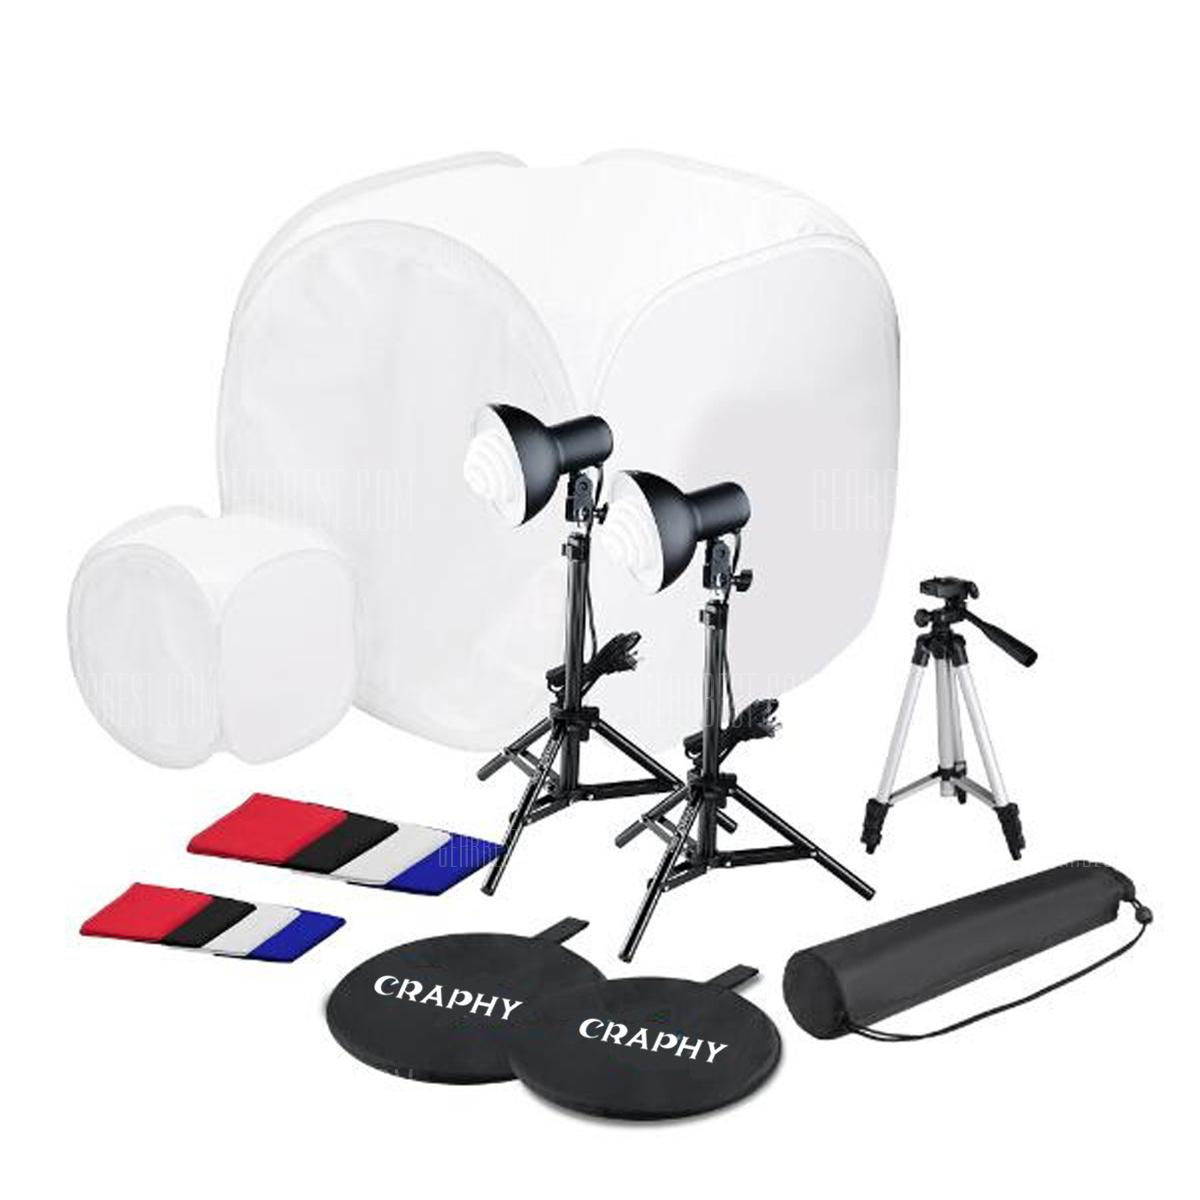 Craphy SHLP - SL 045 - 001 Photo Studio Успышка LED Lighting Kit - чорны